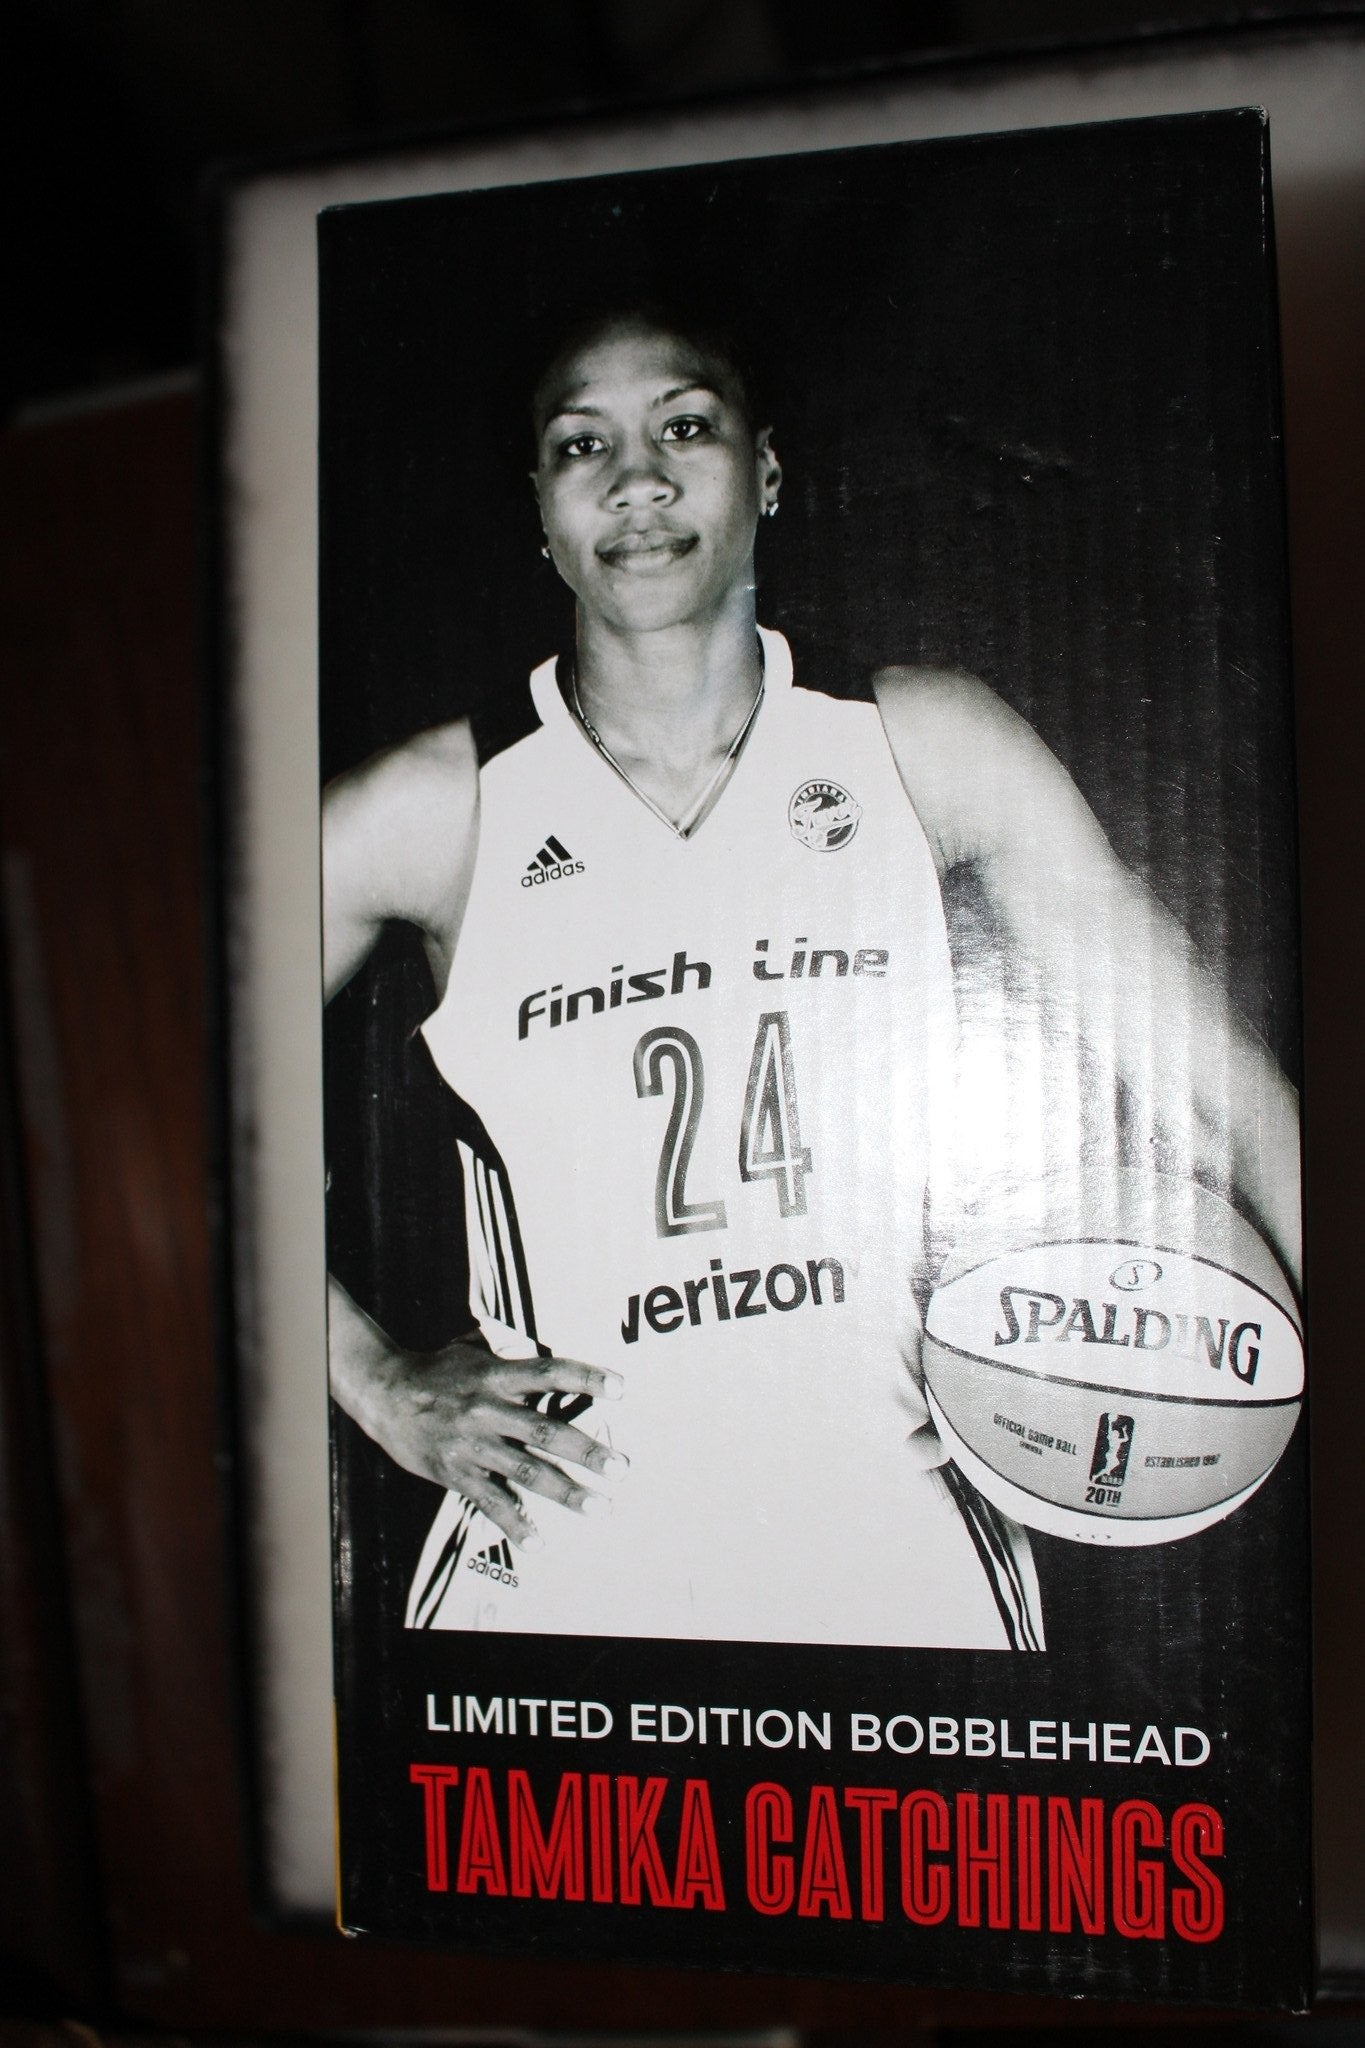 Tamika Catchings 2016 Bobblehead, New in Box - Vintage Indy Sports